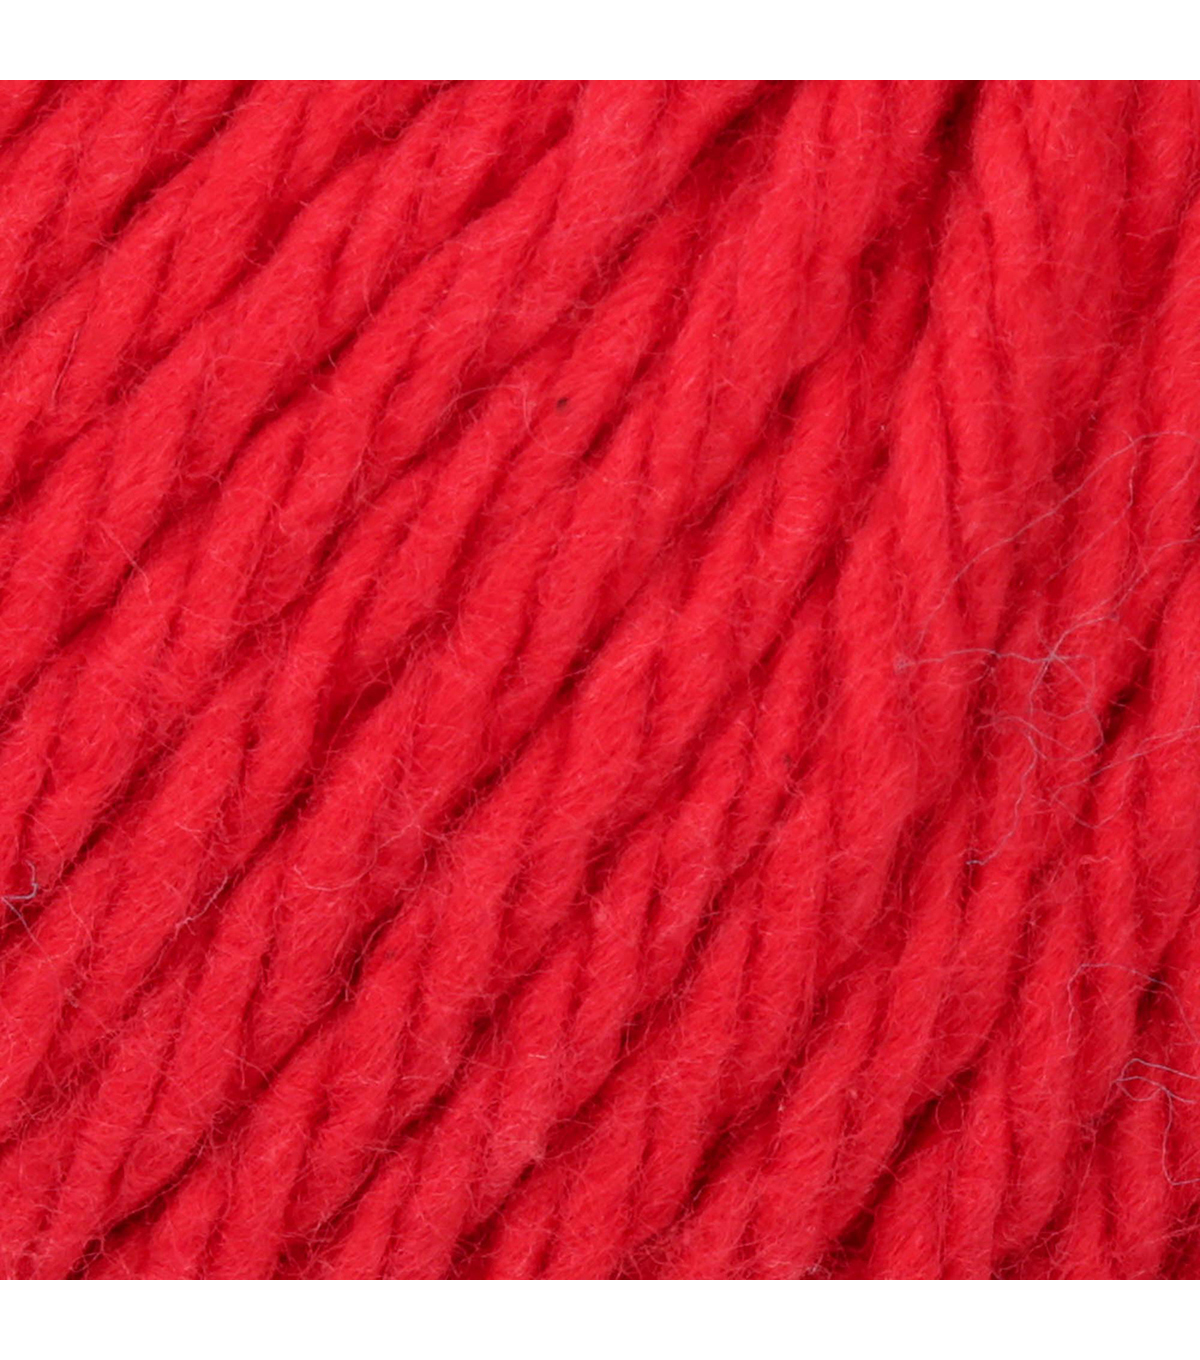 Lily Sugar\u0027n Cream Super Size Yarn, Red